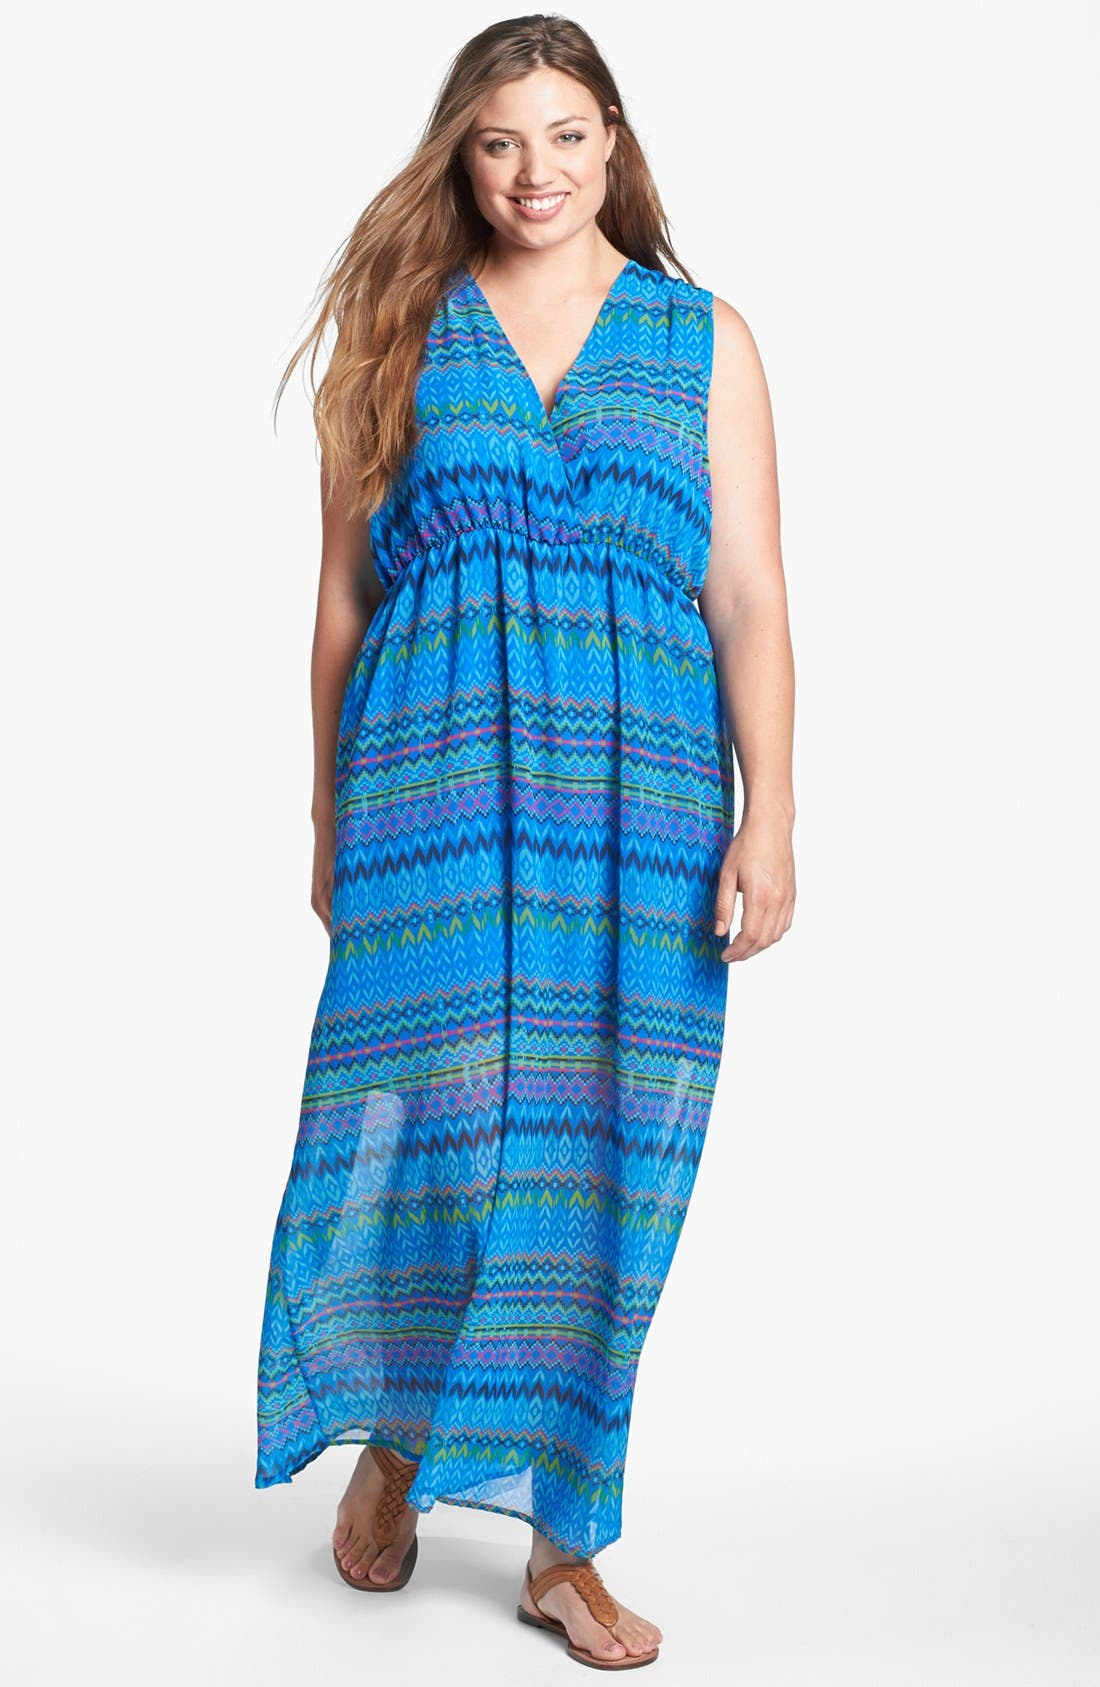 Alternate Image 1 Selected - Sweet Pea by Stacy Frati Print Chiffon Maxi Dress (Plus Size)